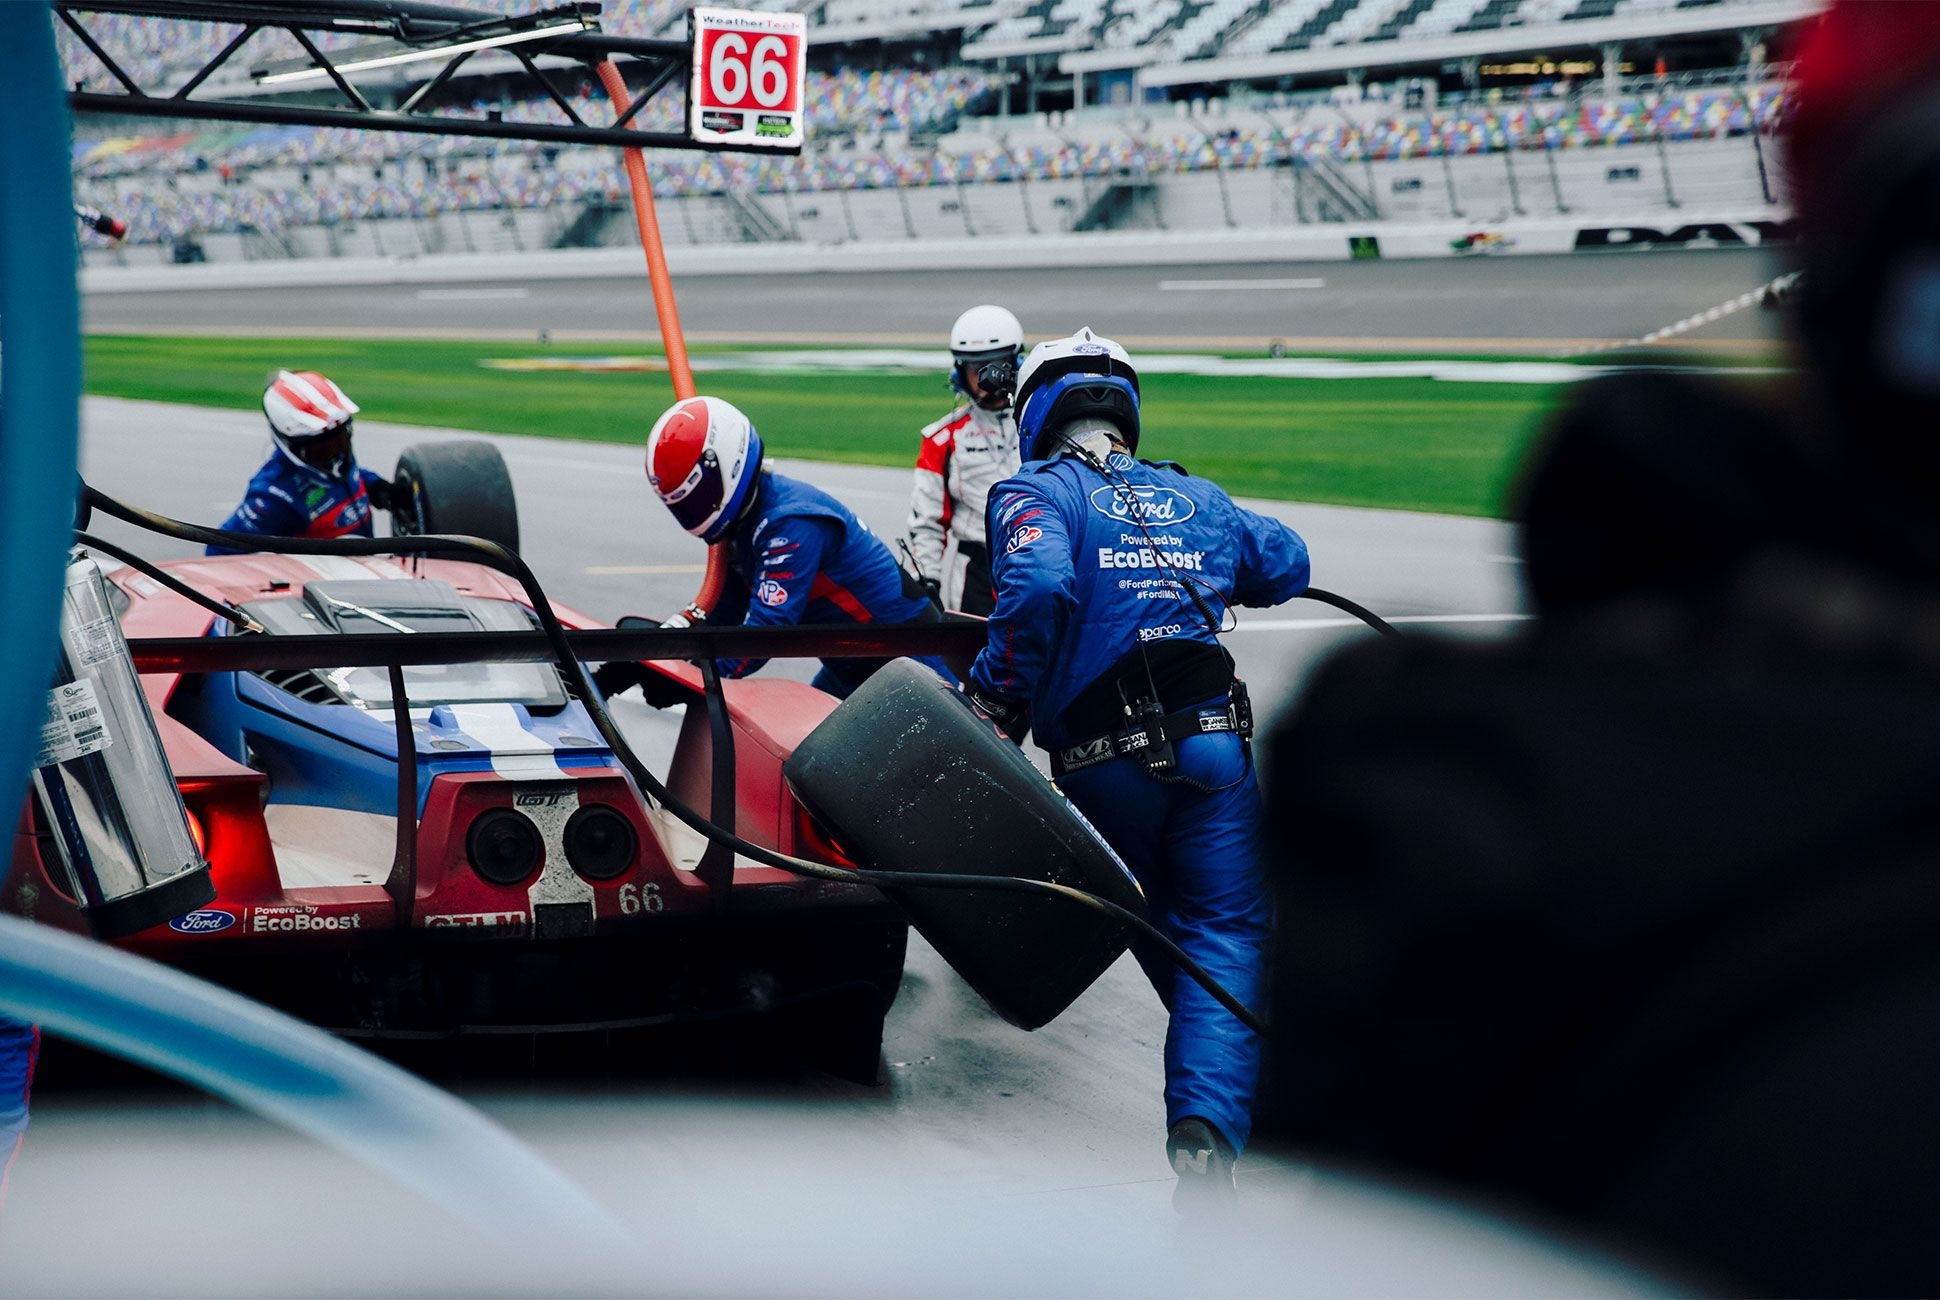 Daytona 24 Gear Patrol Slide 32